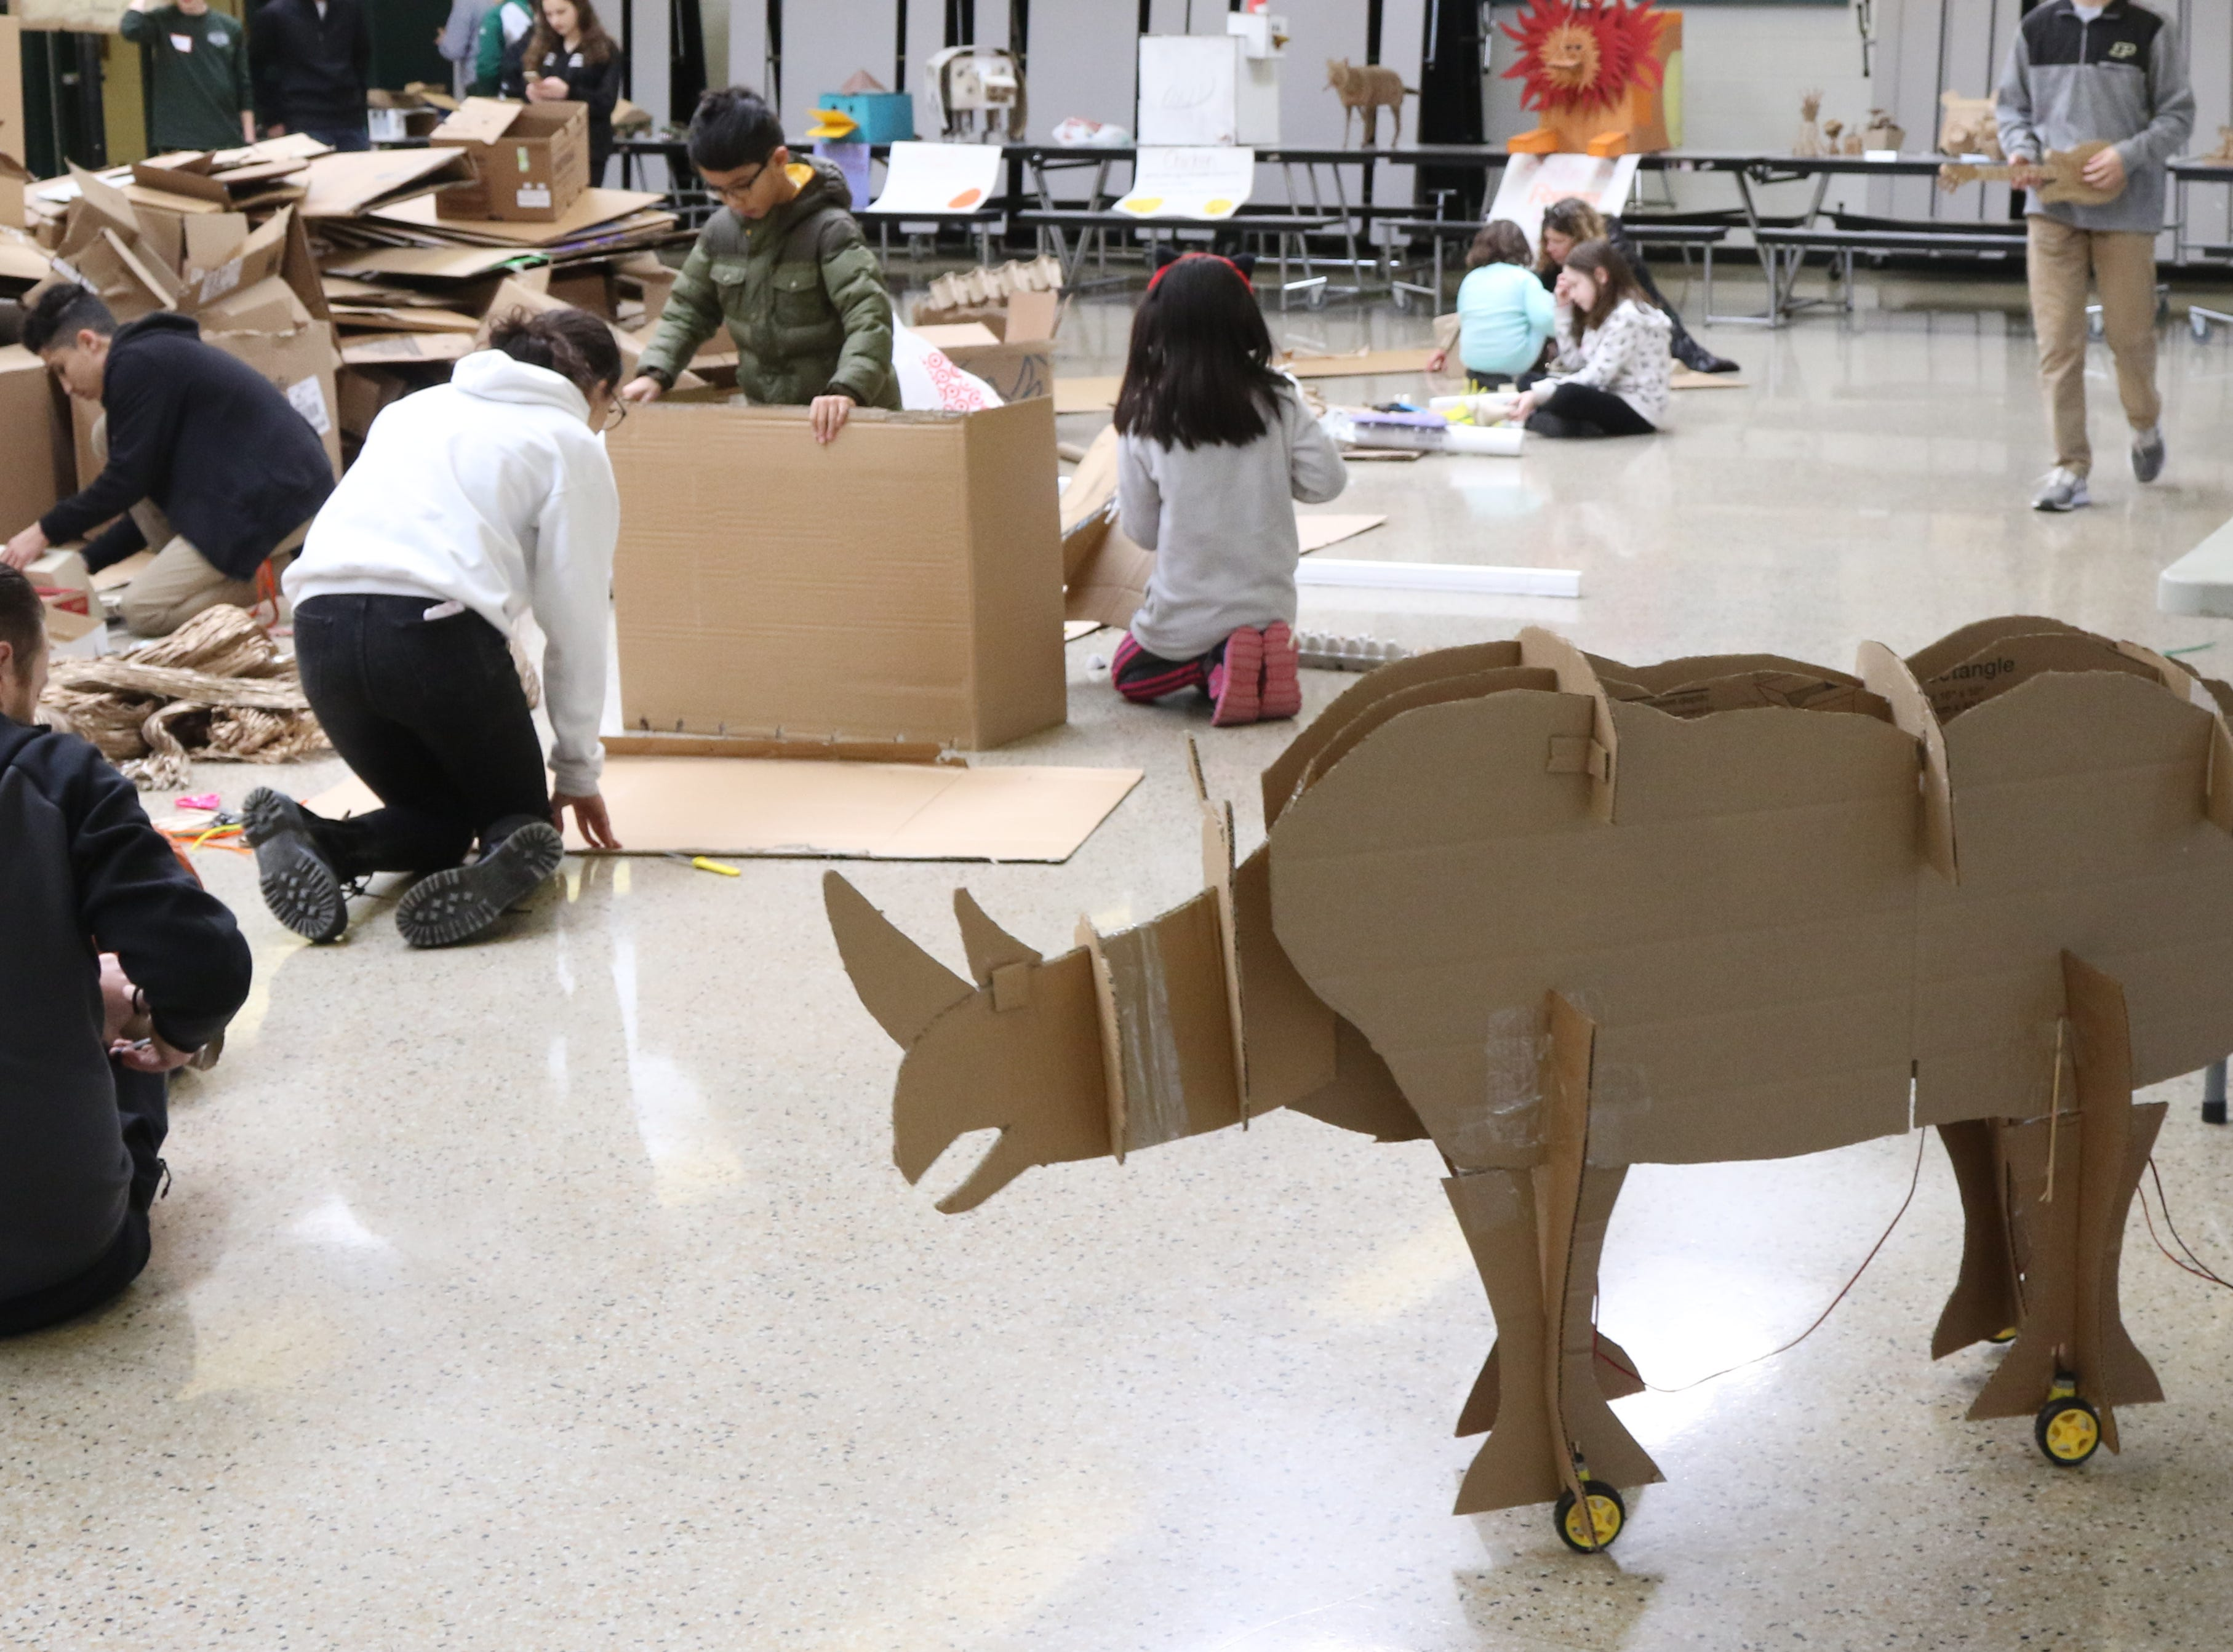 A mechanical rhinoceros that has wheels is part of the Cardboard Animal-a-thon at Ramapo HS where engineering students work on and display their projects, making mechanical animals out of cardboard. They also helped younger students work on projects during the event held at Ramapo HS on February 9, 2019.